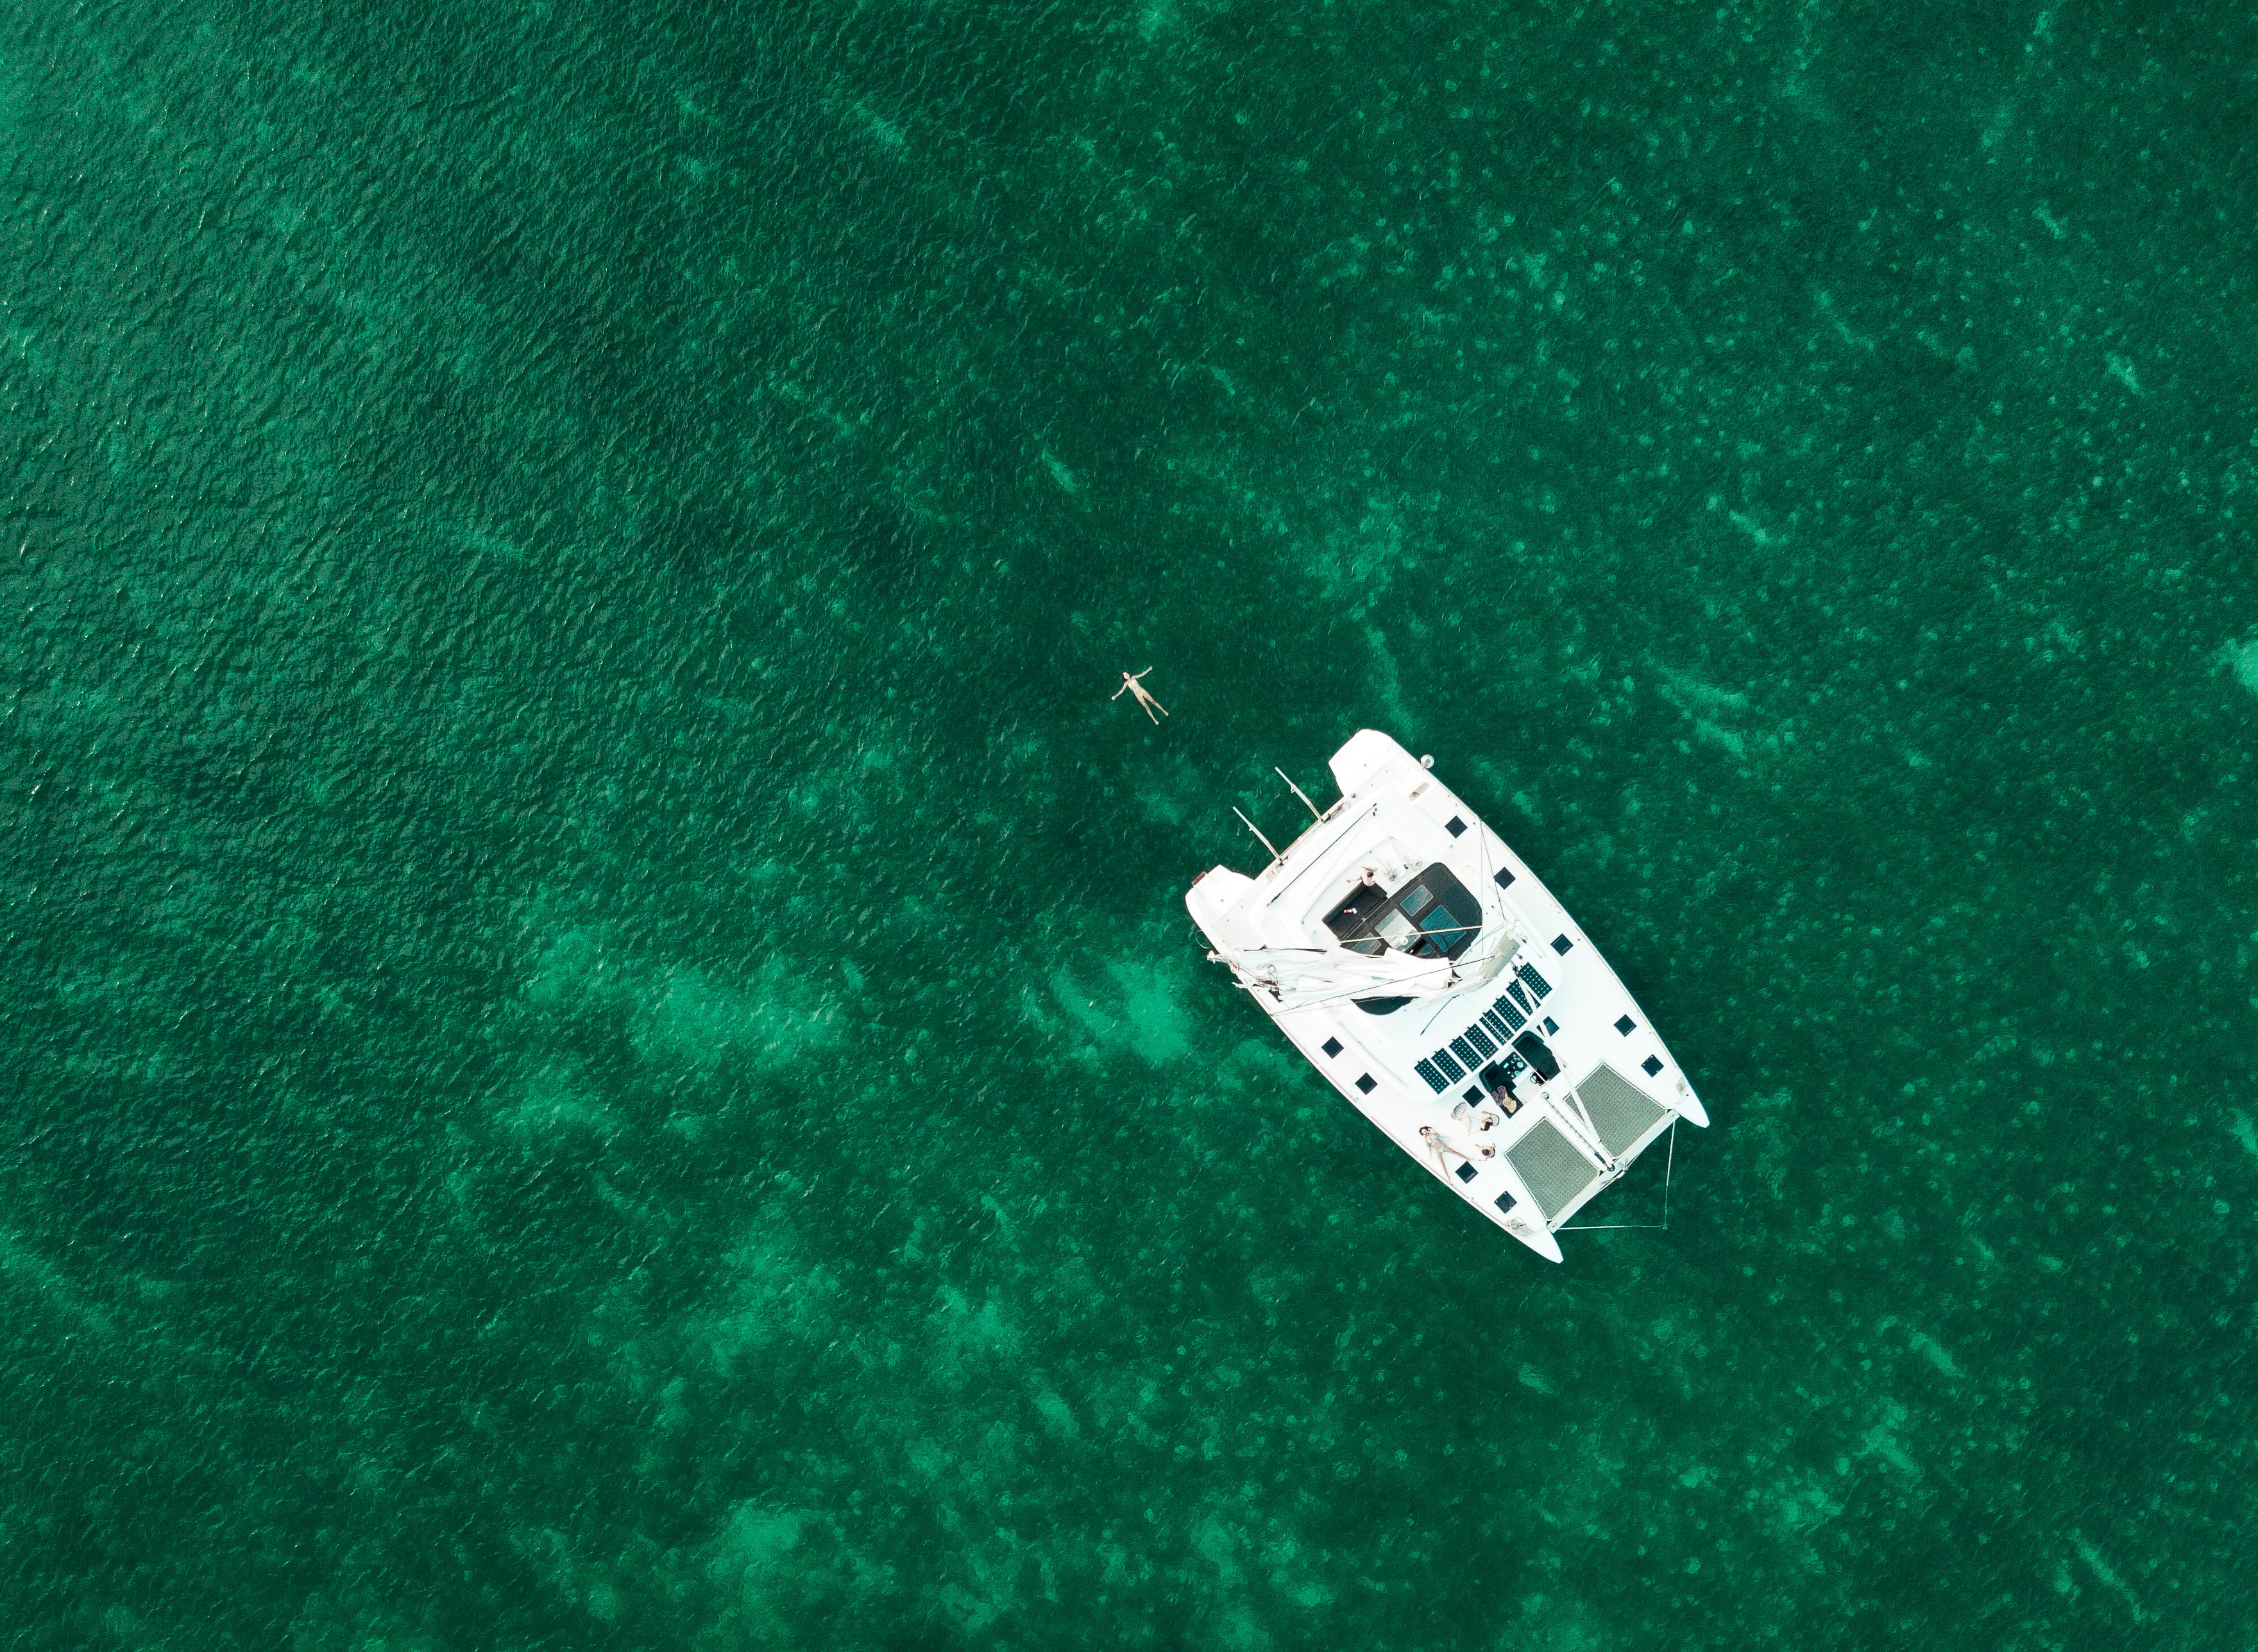 aerial view photography of white boat in the middle of body of water during daytime